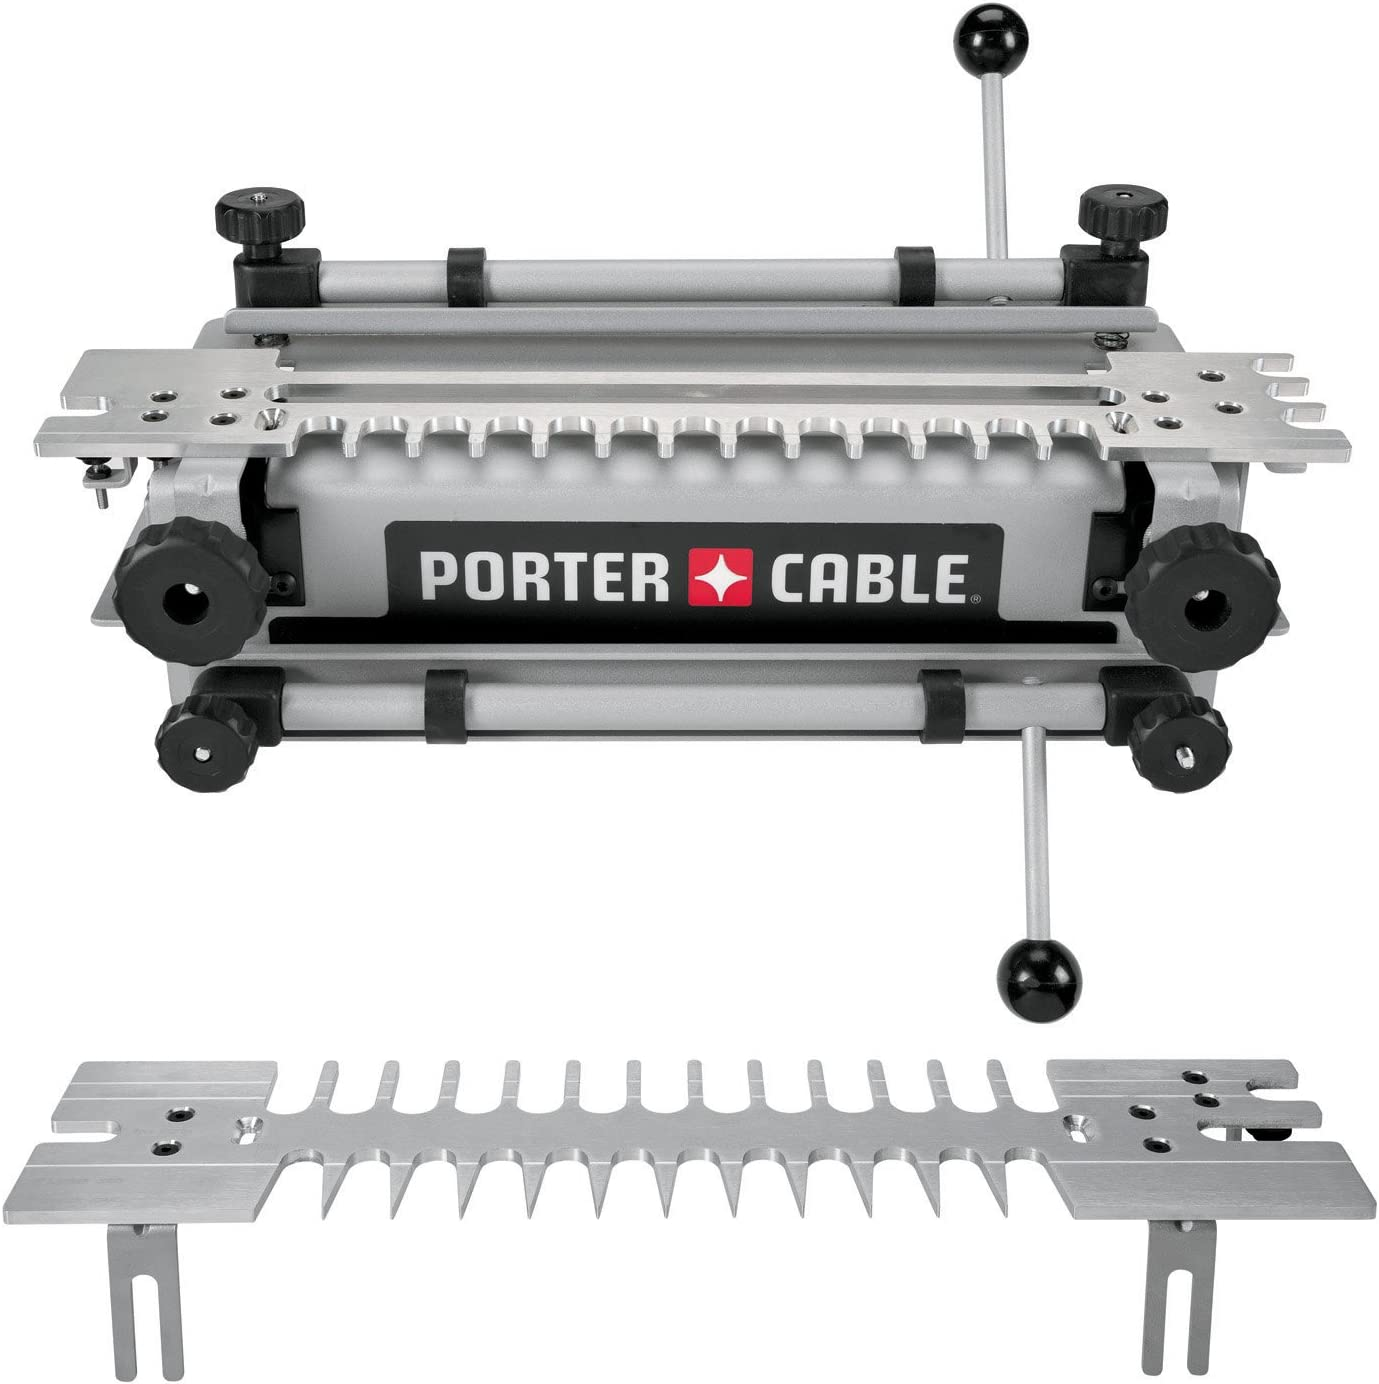 Porter Cable Dovetail Jig 4212 Deluxe